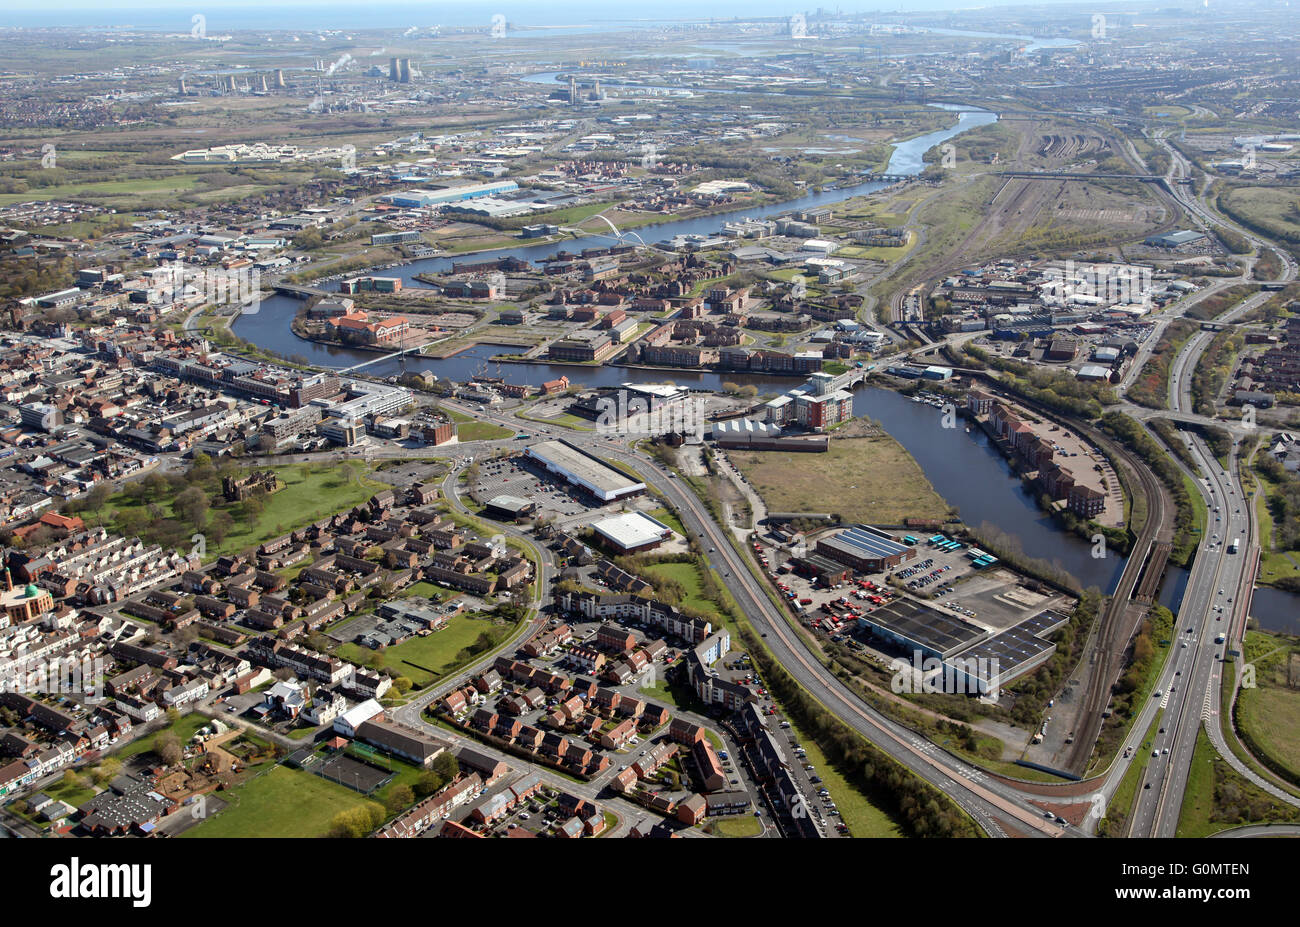 aerial view of Stockton-on-Tees with the A66 & River Tees prominent, UK Stock Photo